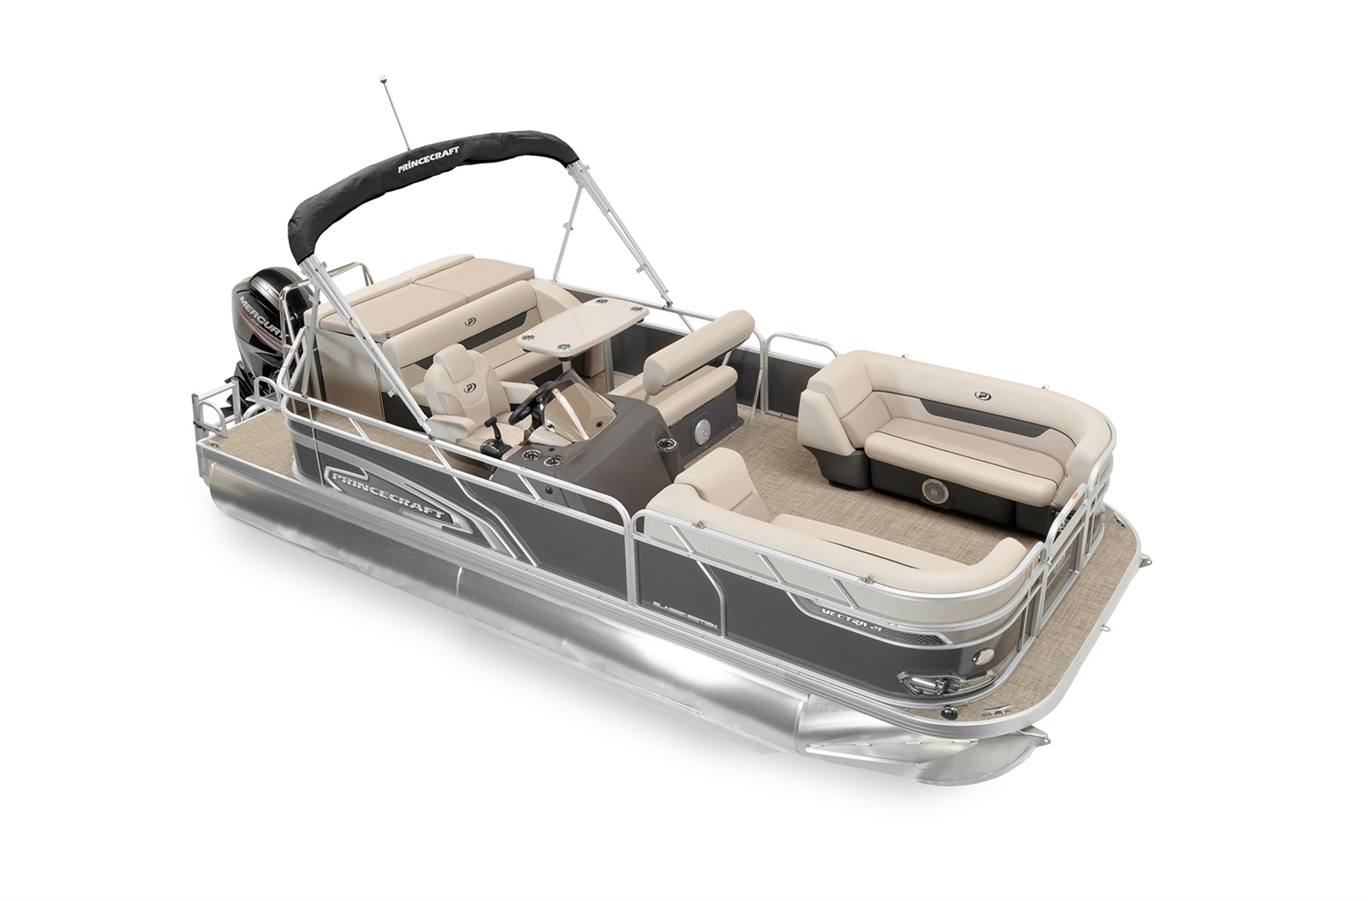 2019 Princecraft Vectra 21 LT for sale in Watertown, WI | Dave's